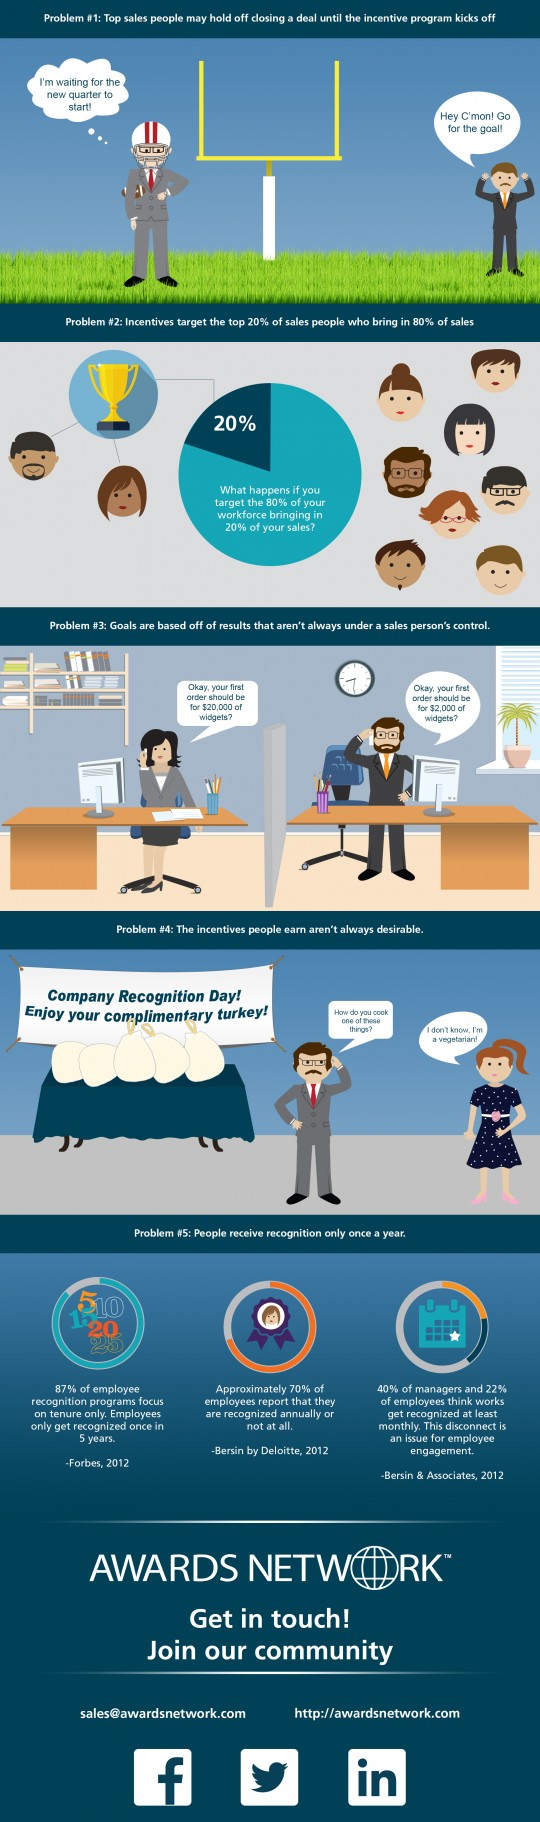 Top 5 Sales Incentive Program Mistakes To Avoid